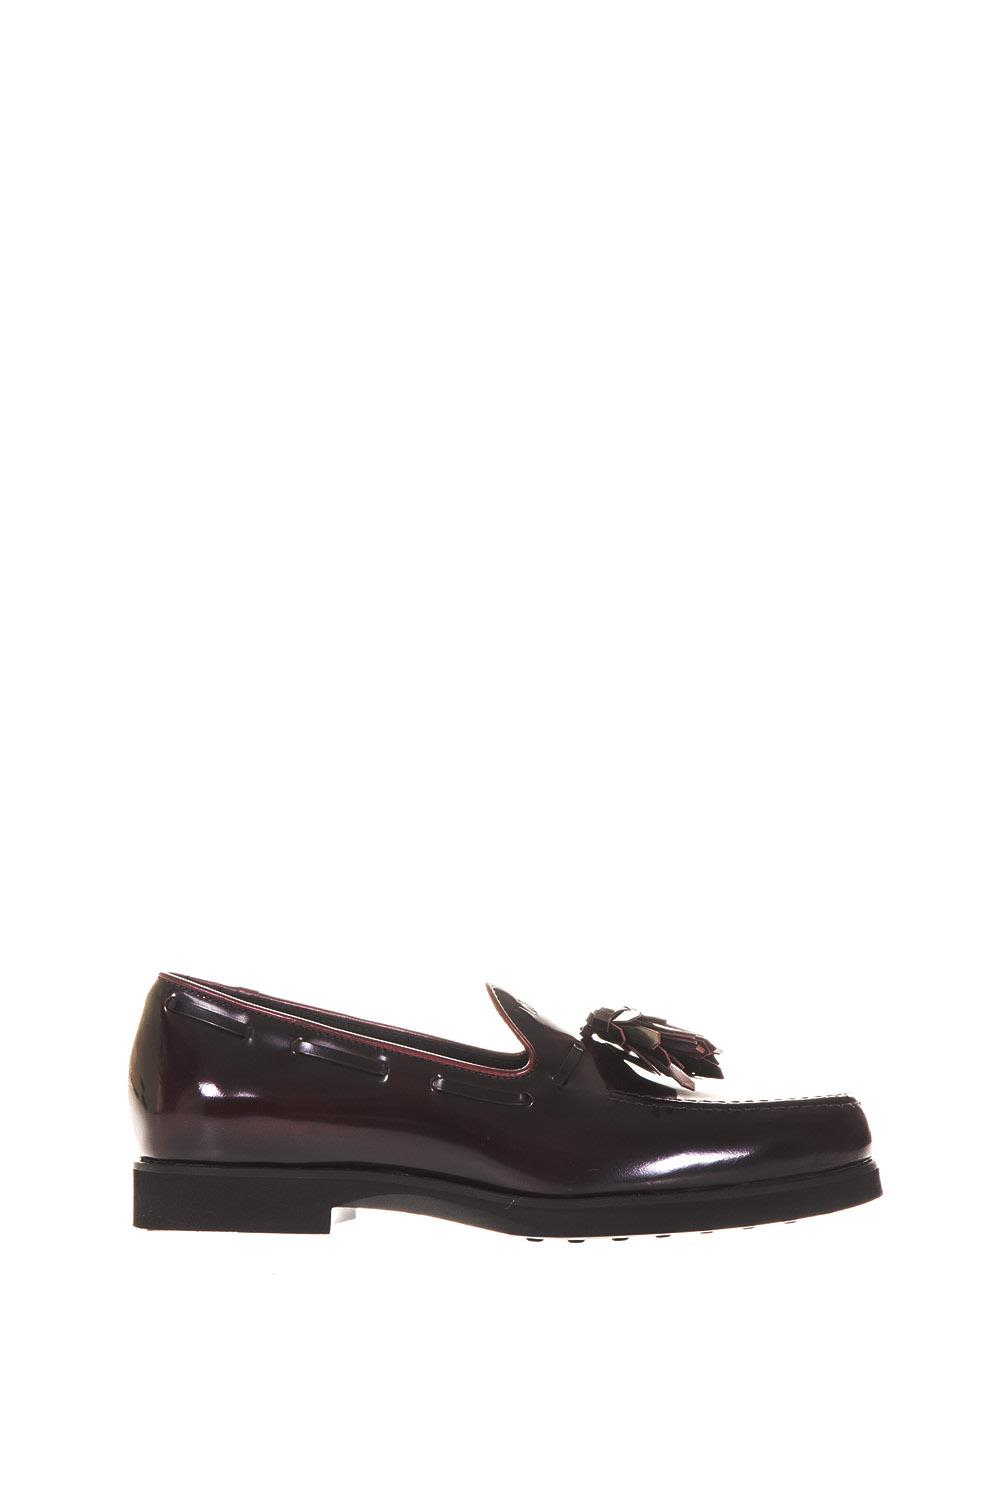 Tods Brushed Leather Loafers With Tassel